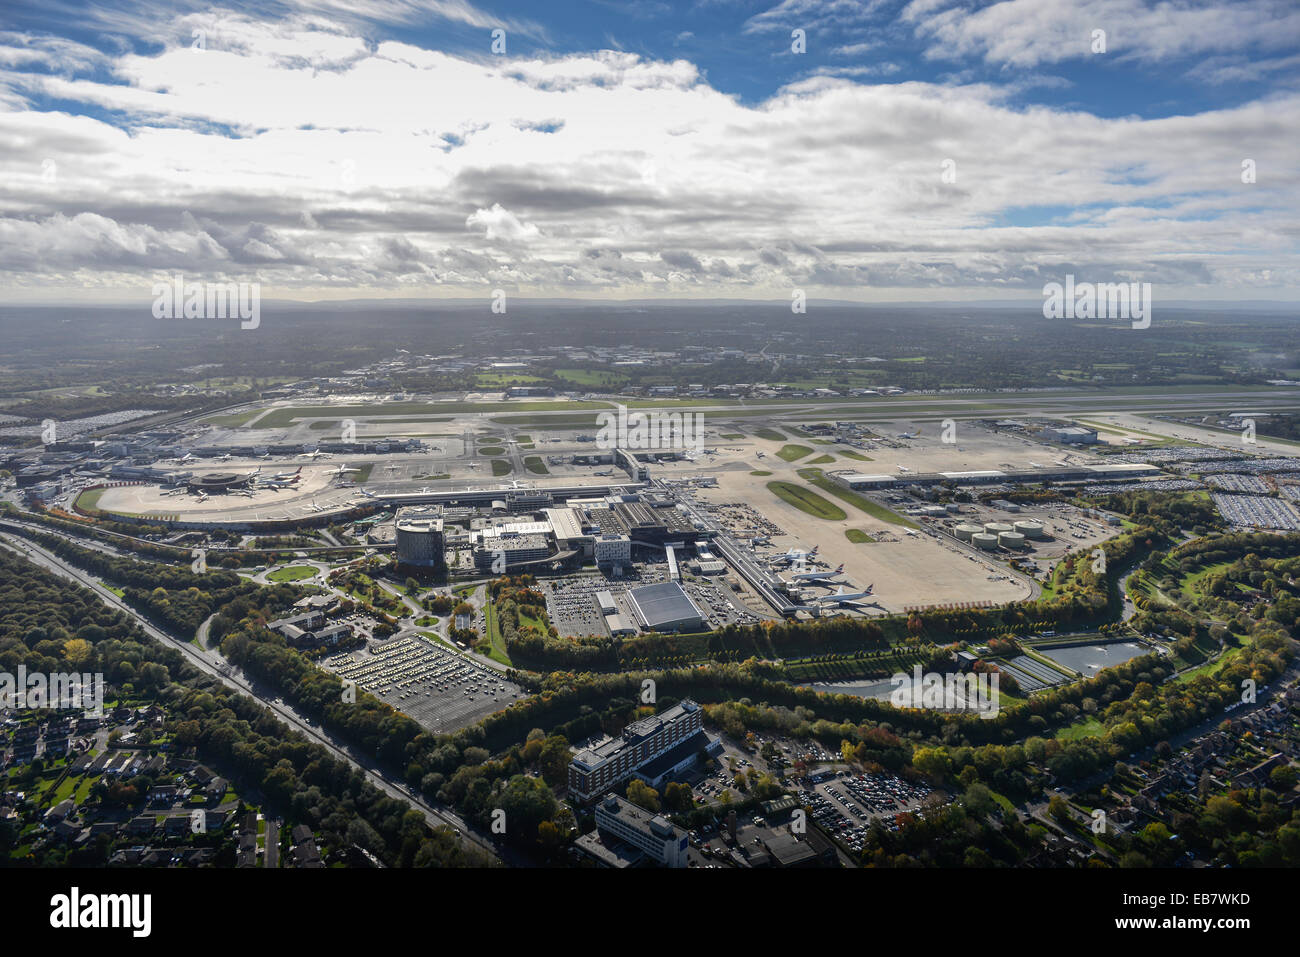 An aerial view of Gatwick Airport, Sussex, UK - Stock Image